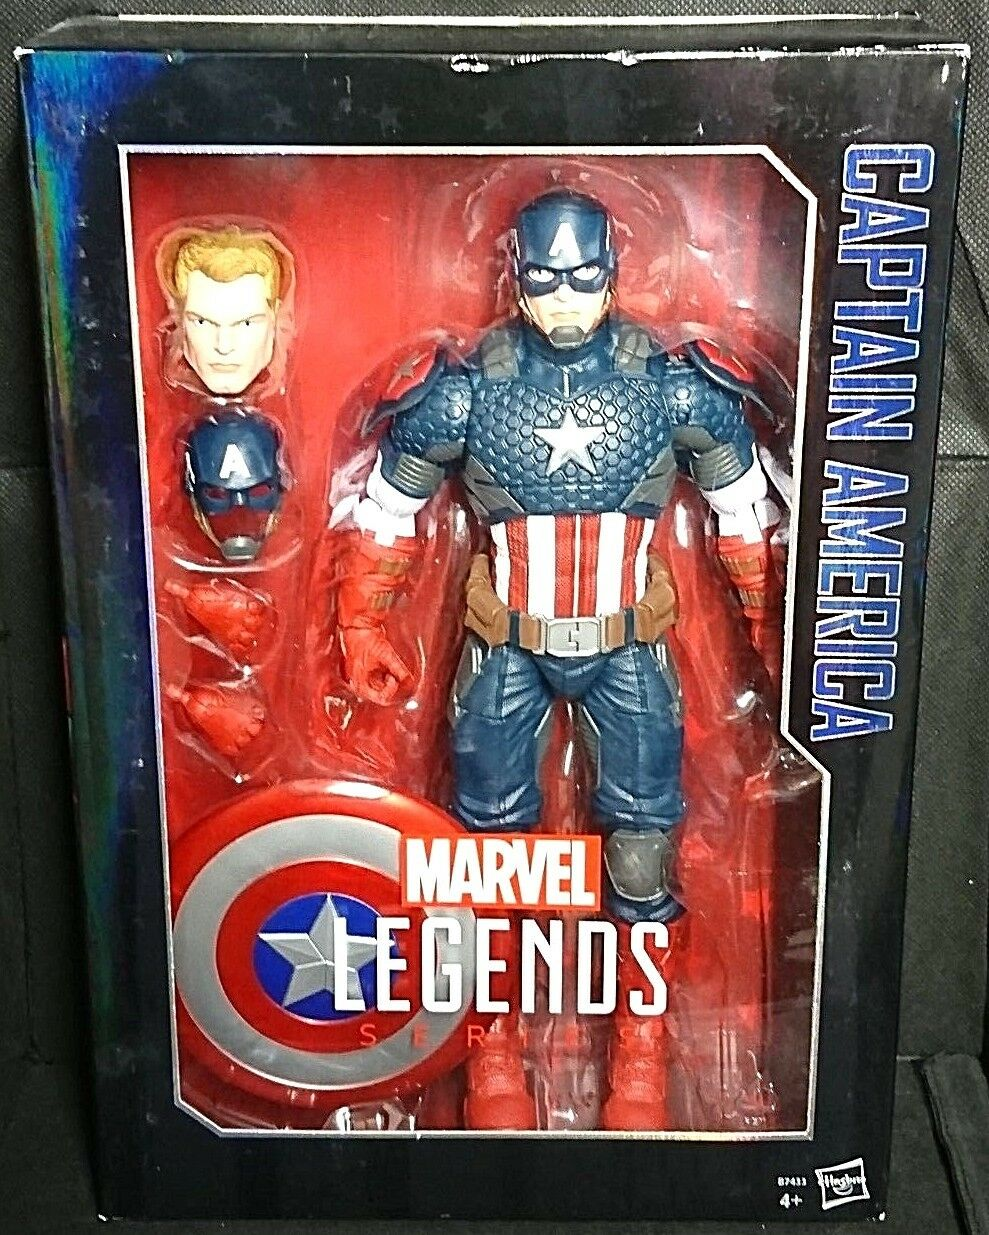 Marvel Legends CAPTAIN AMERICA (Avengers Steve Rogers Chris Evans) 12  Figure